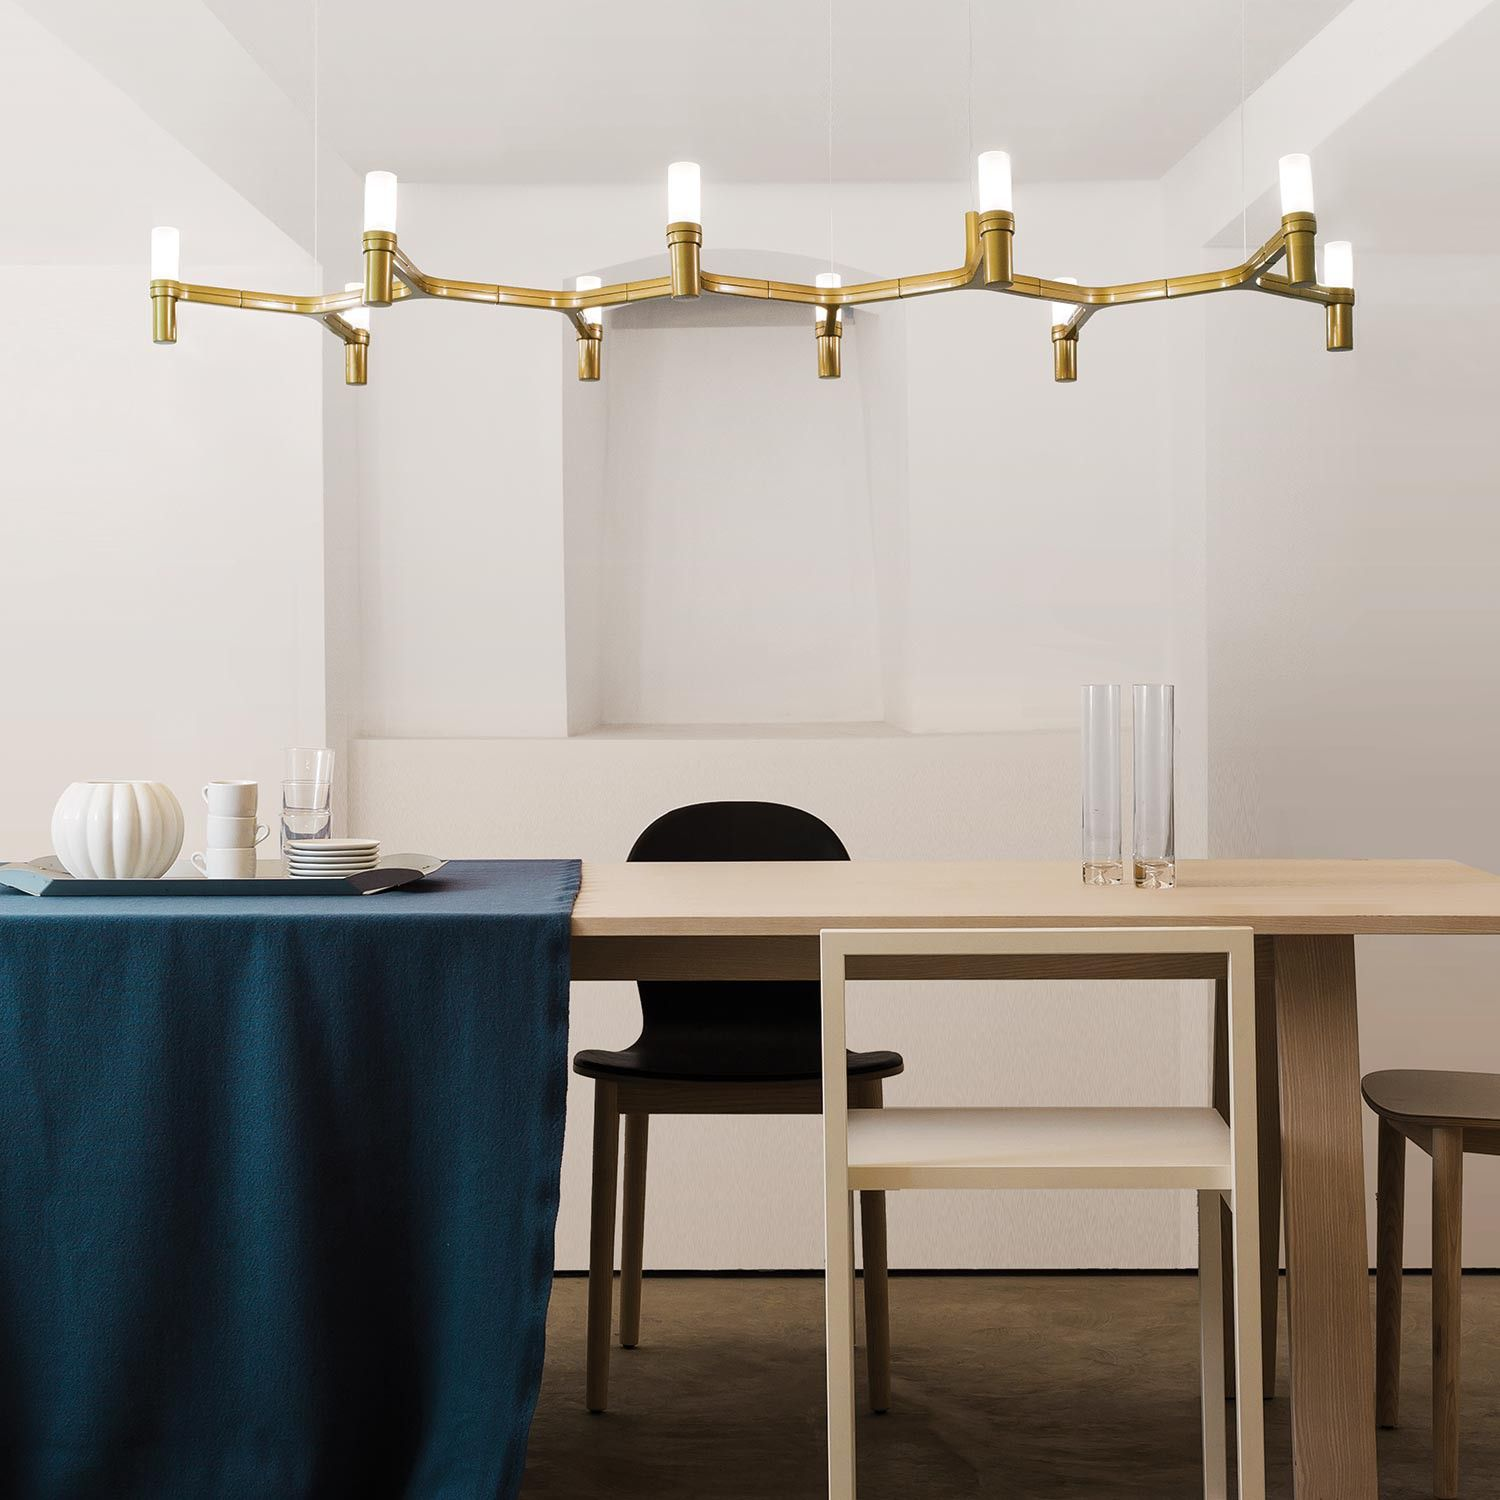 Crown Plana Linear Pendant designed by Jehs and Laub is a